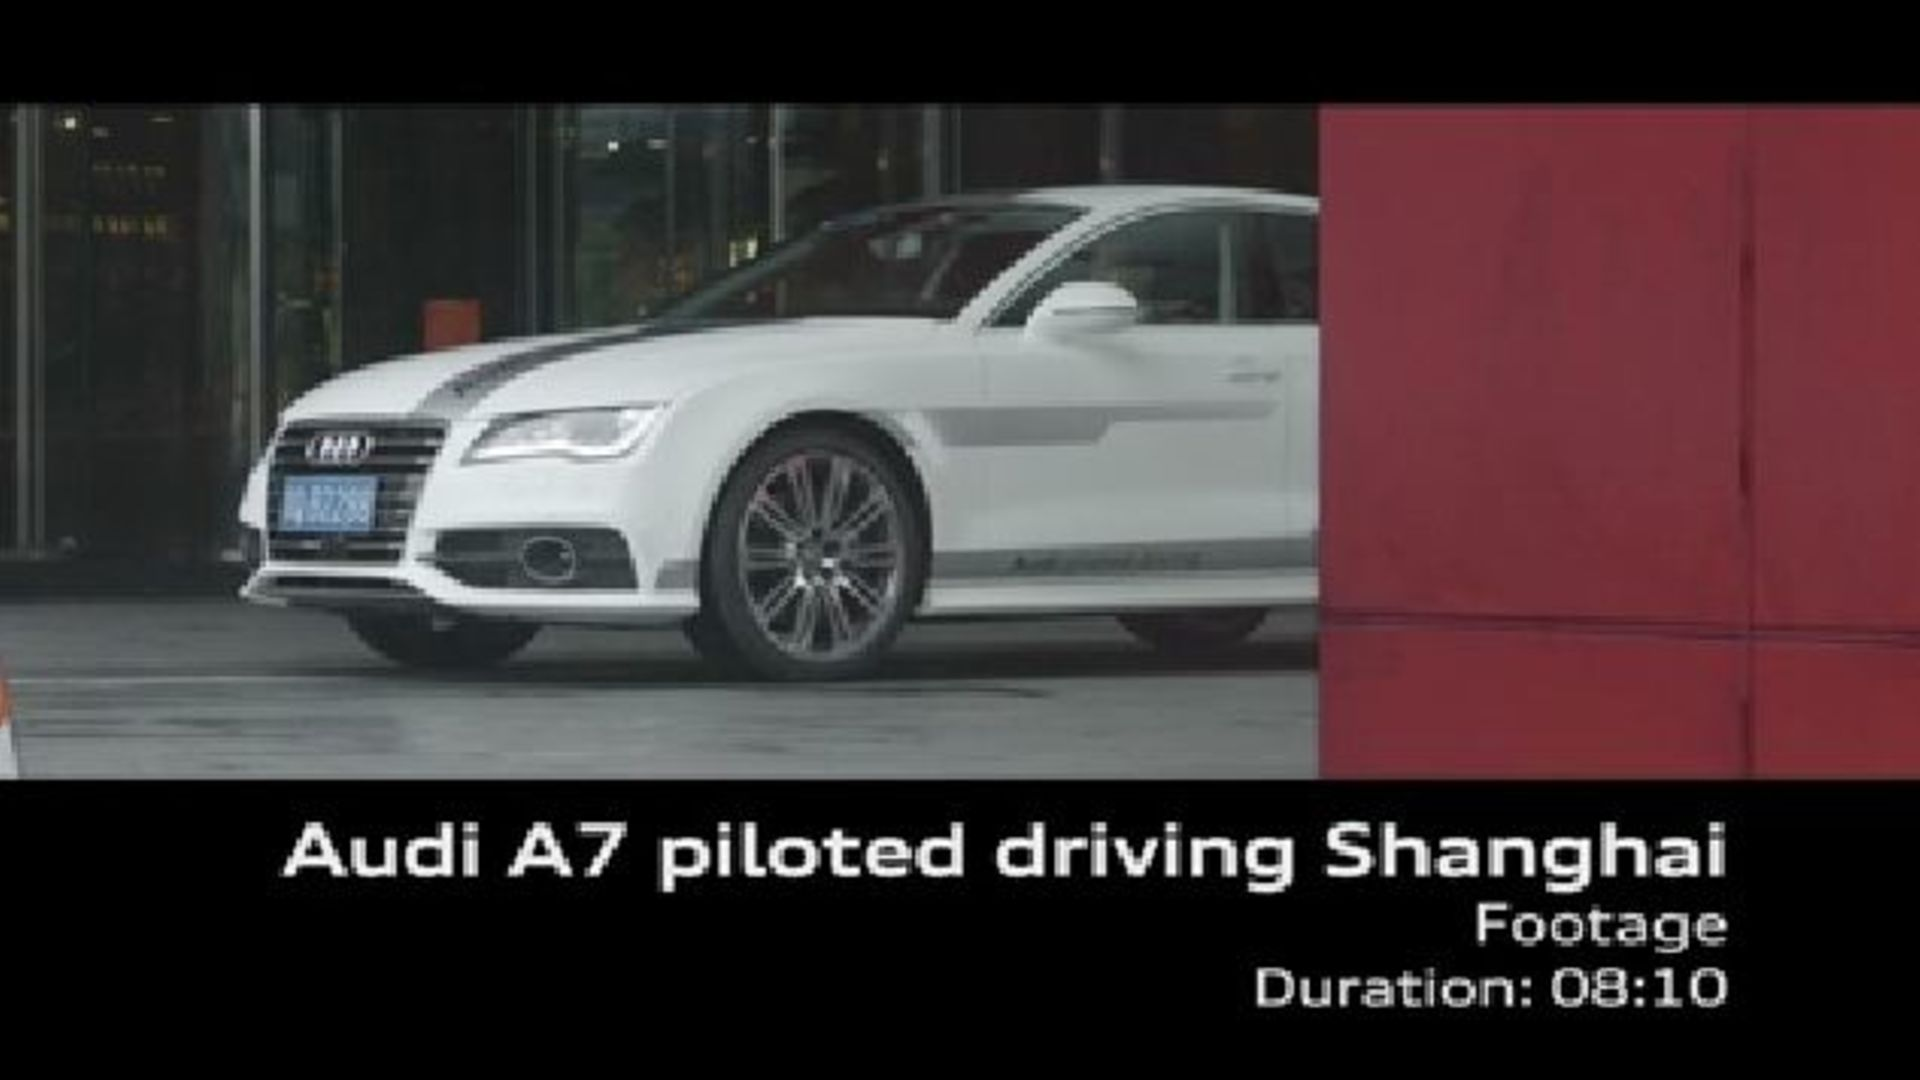 Audi A7 piloted driving Shanghai Footage